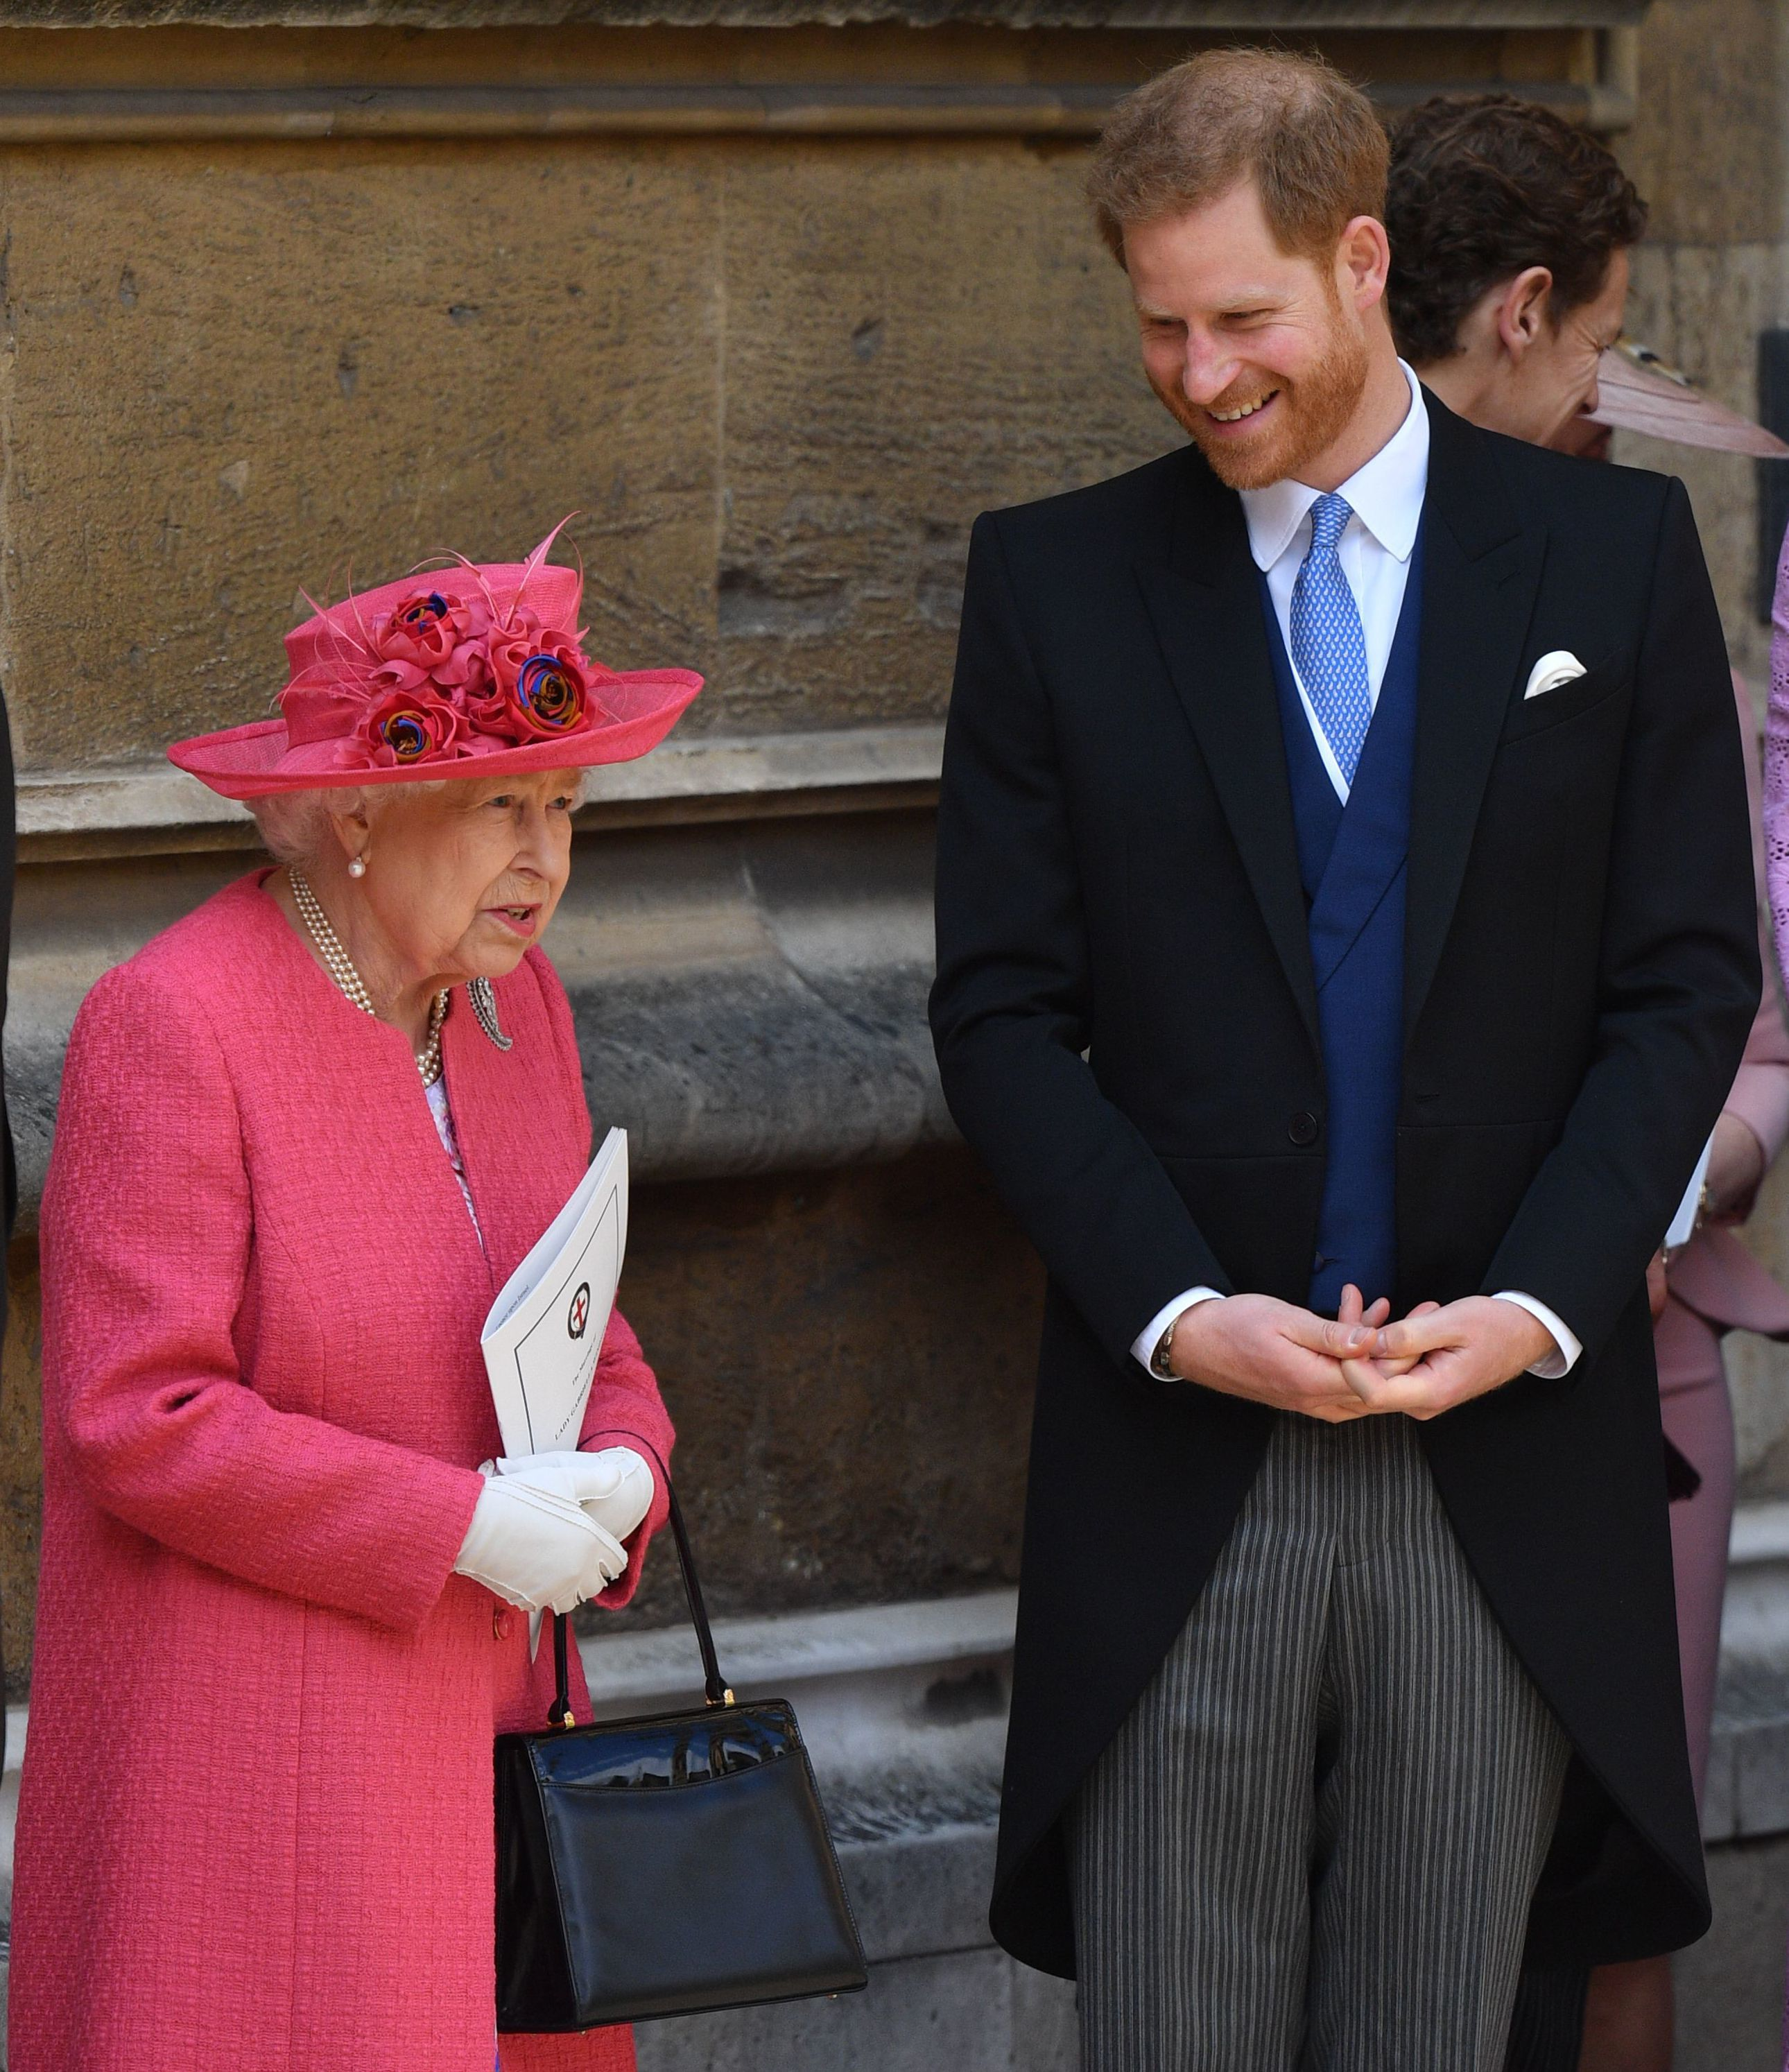 See the guests and best photos from Lady Gabriella Windsor's royal wedding